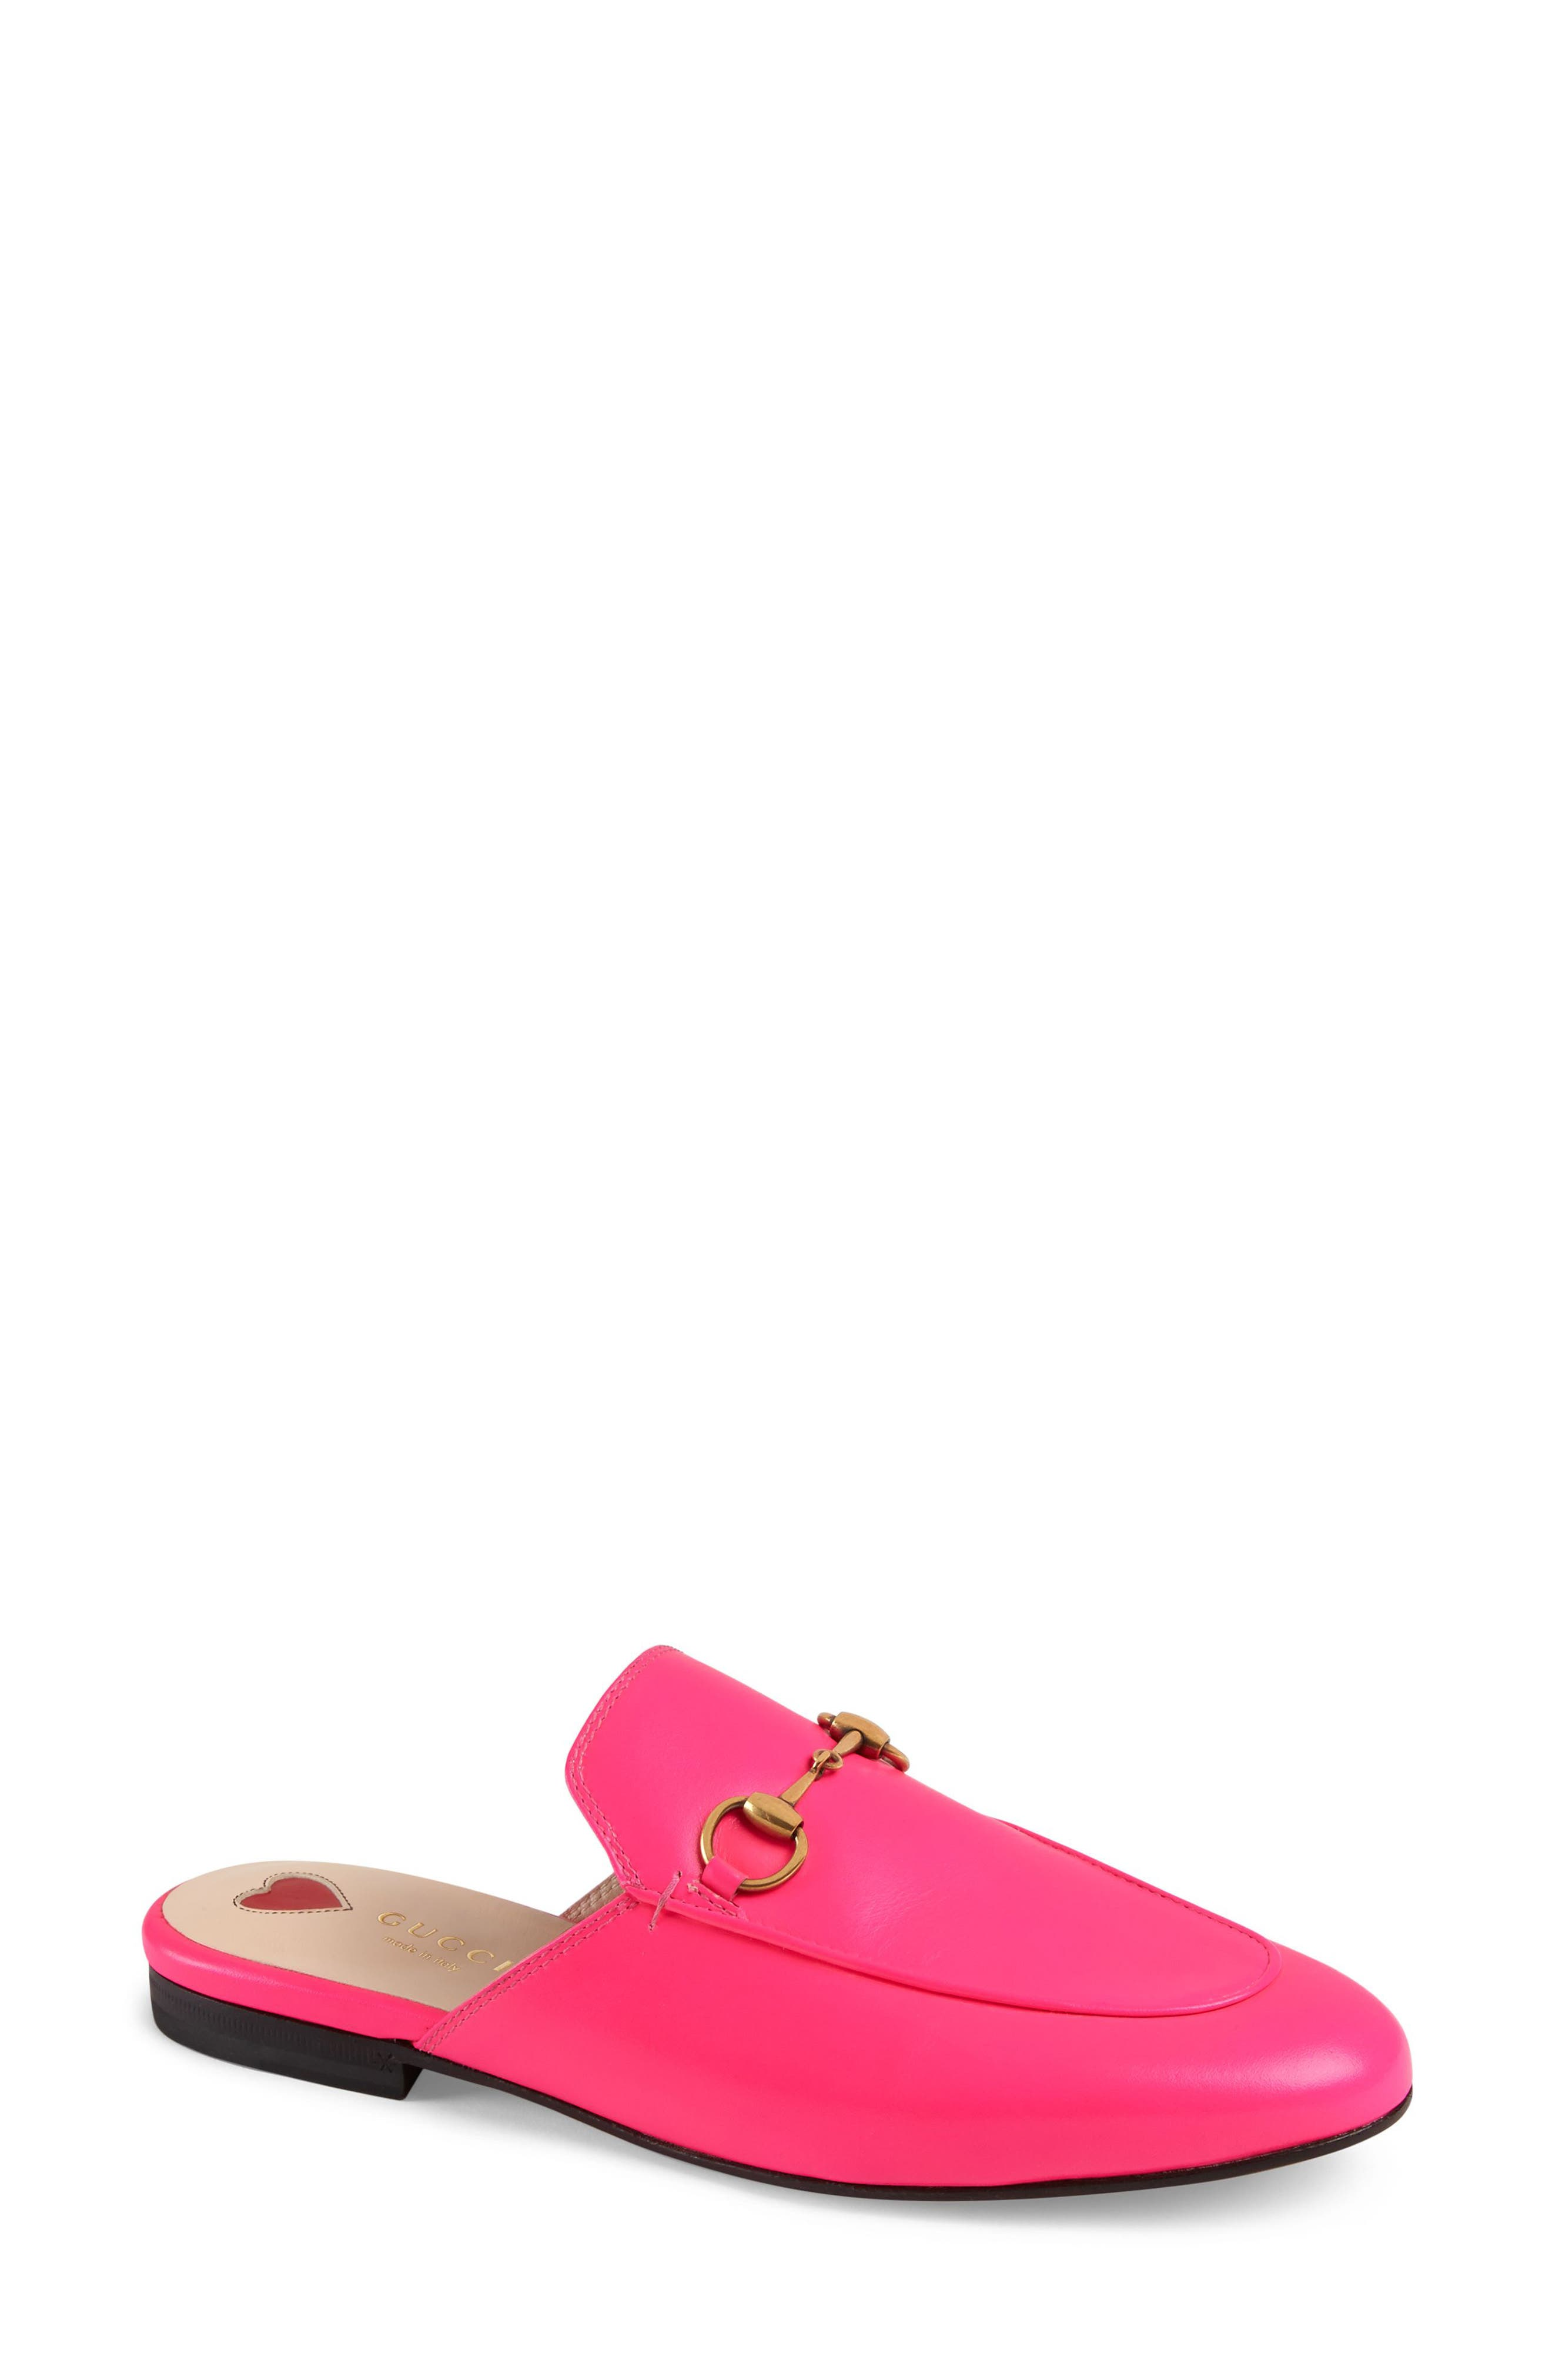 Neon Leather Horsebit Mules in Pink